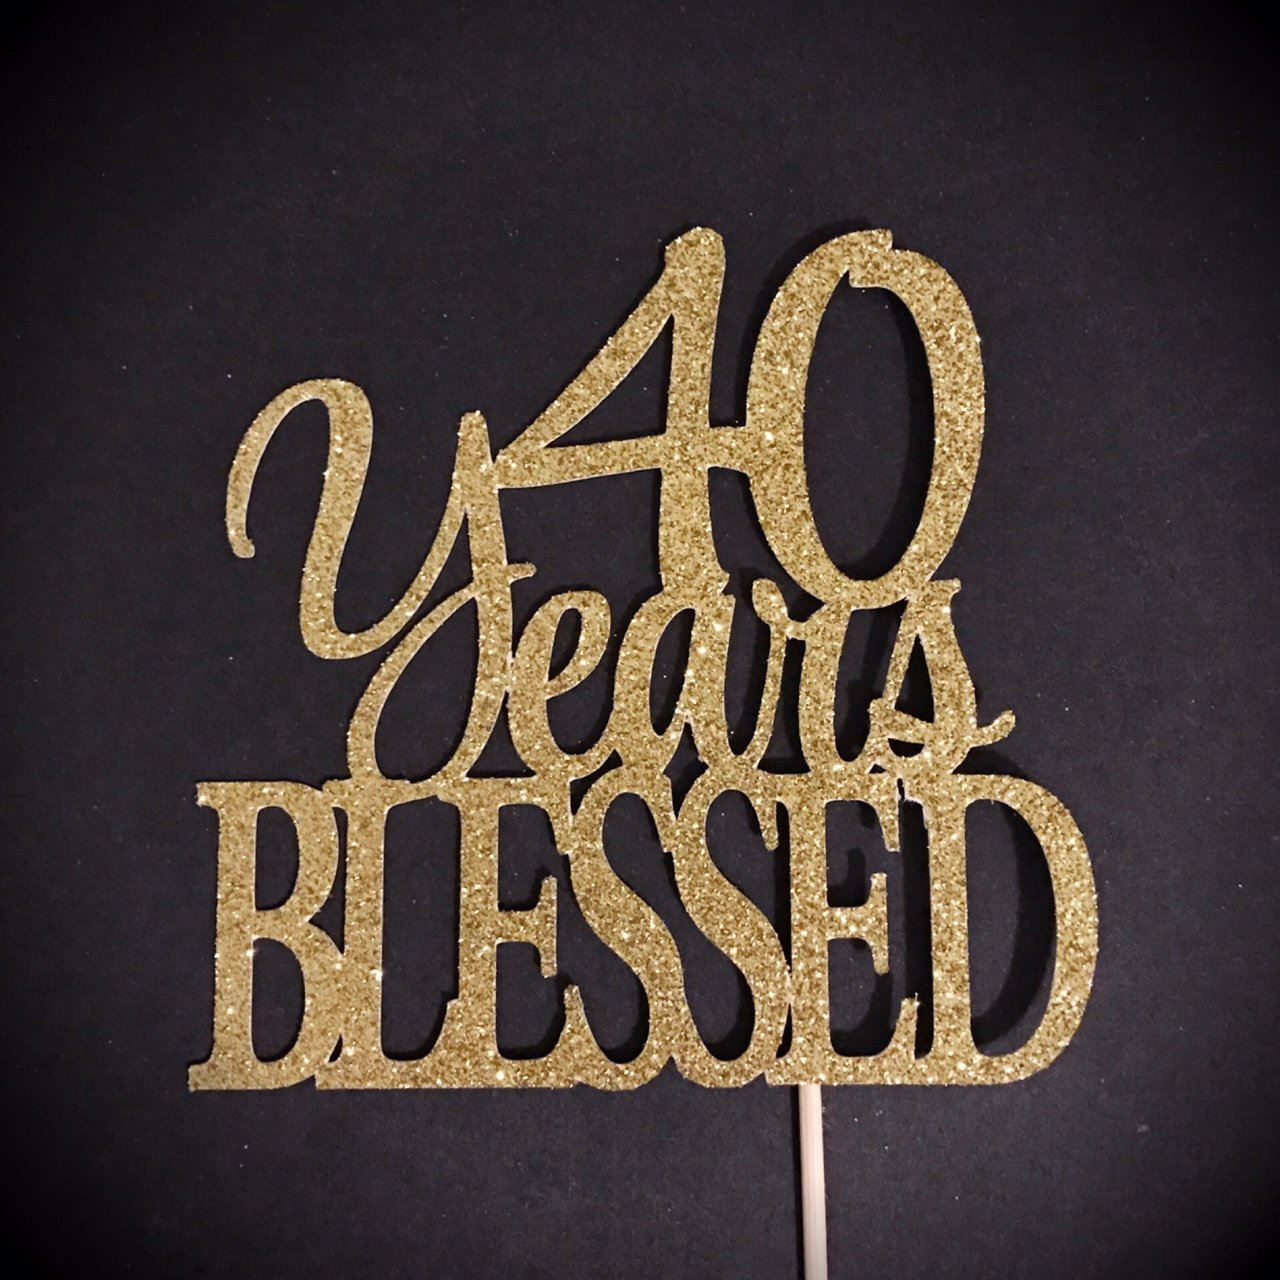 40 Years Blessed Cake Topper, 40 Cake Topper, 40th Anniversary Cake Topper, Forty Cake Topper, 40th Birthday Cake Topper, 40 Centerpiece